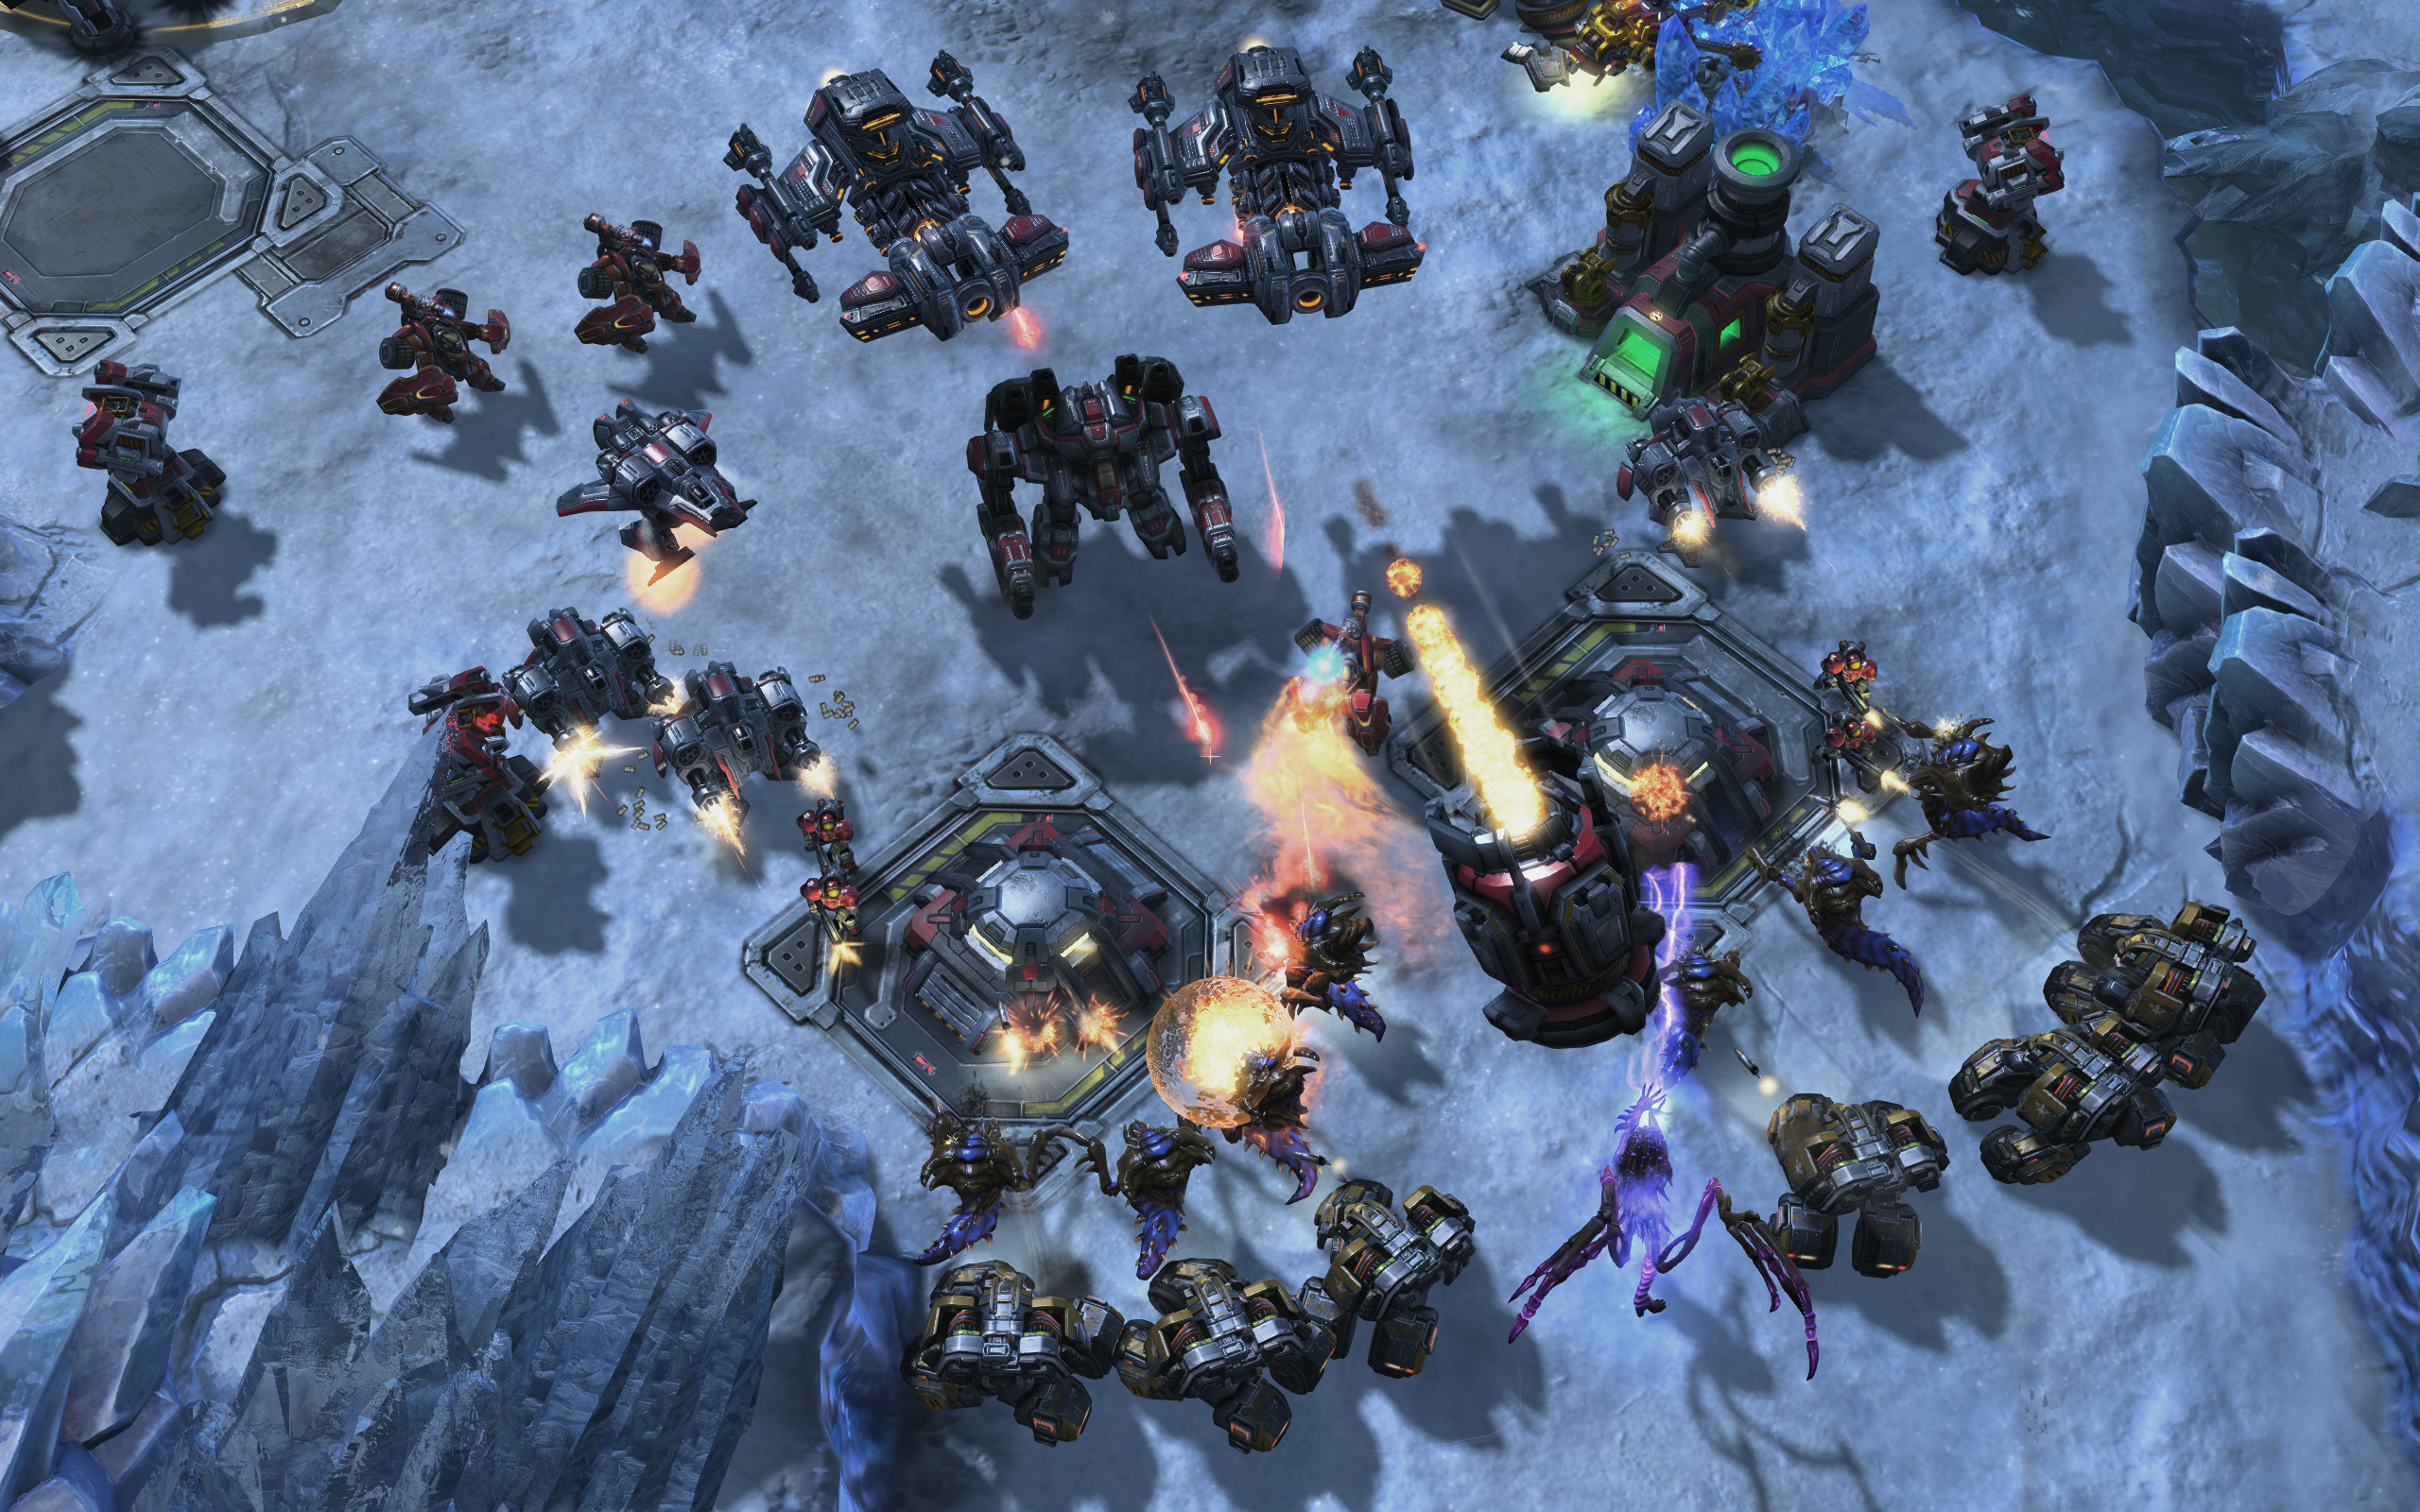 Starcraft matchmaking queues are currently unavailable